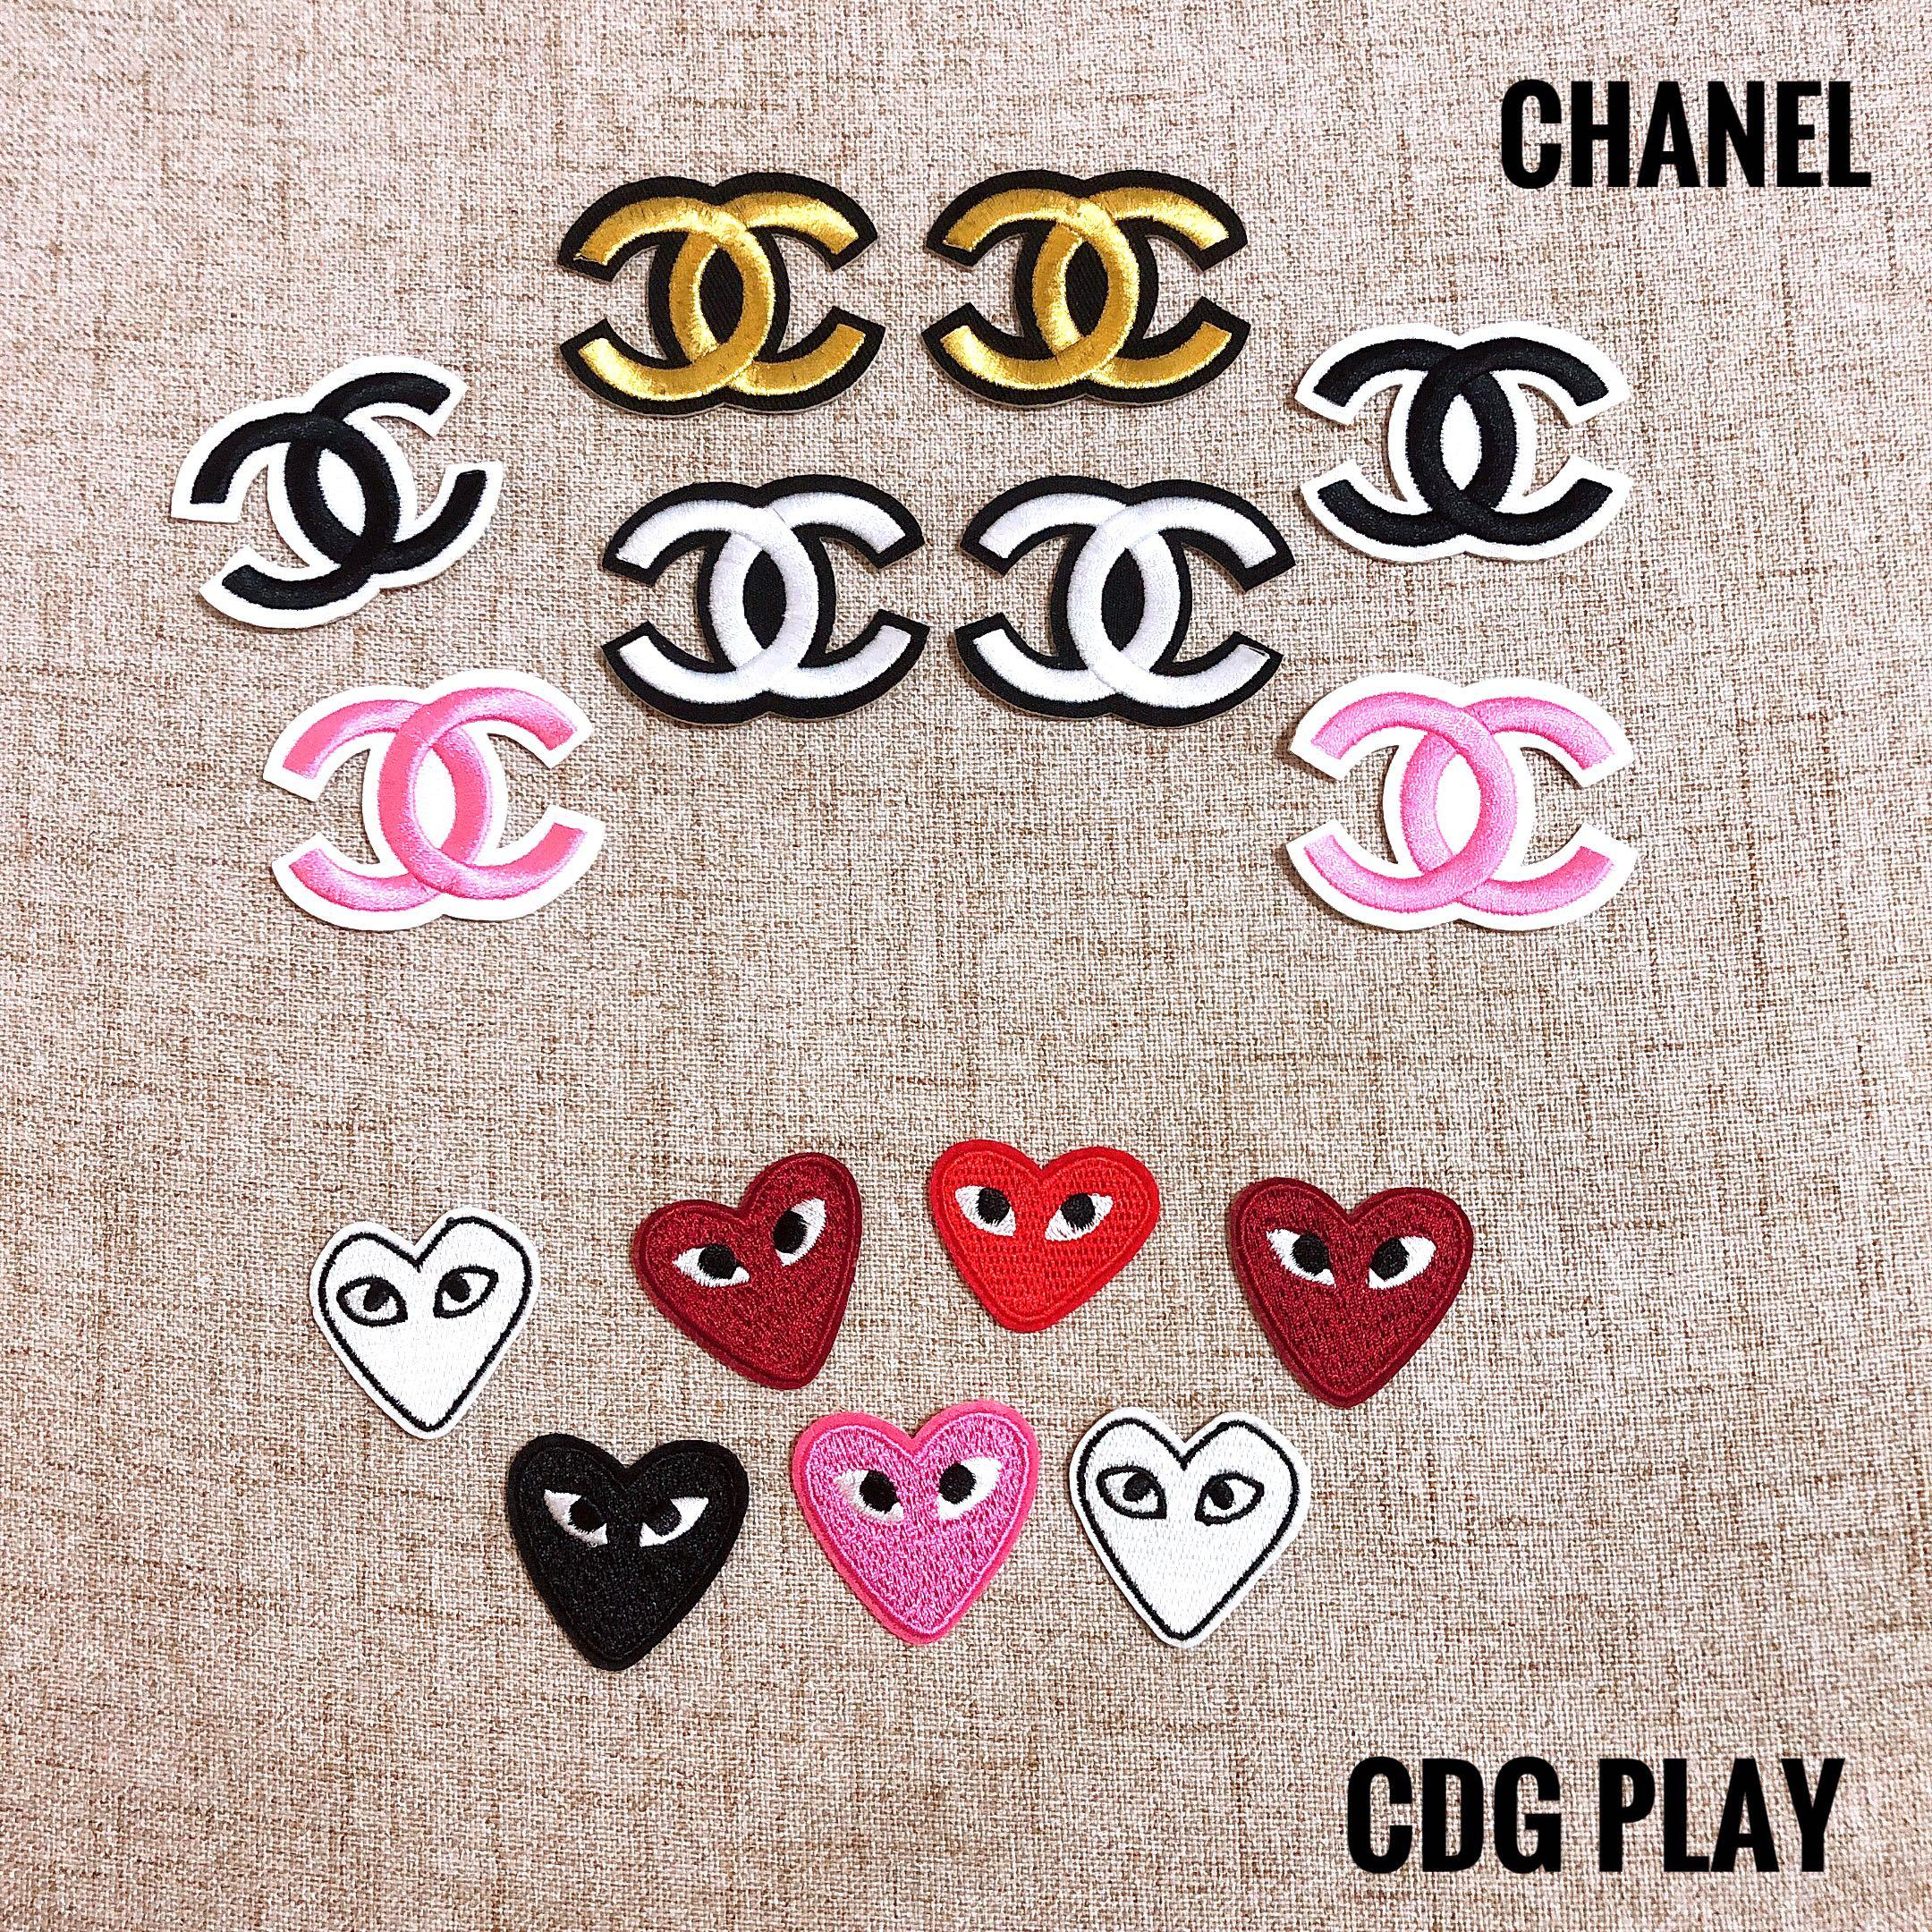 CHANEL / CDG PLAY Iron on patches